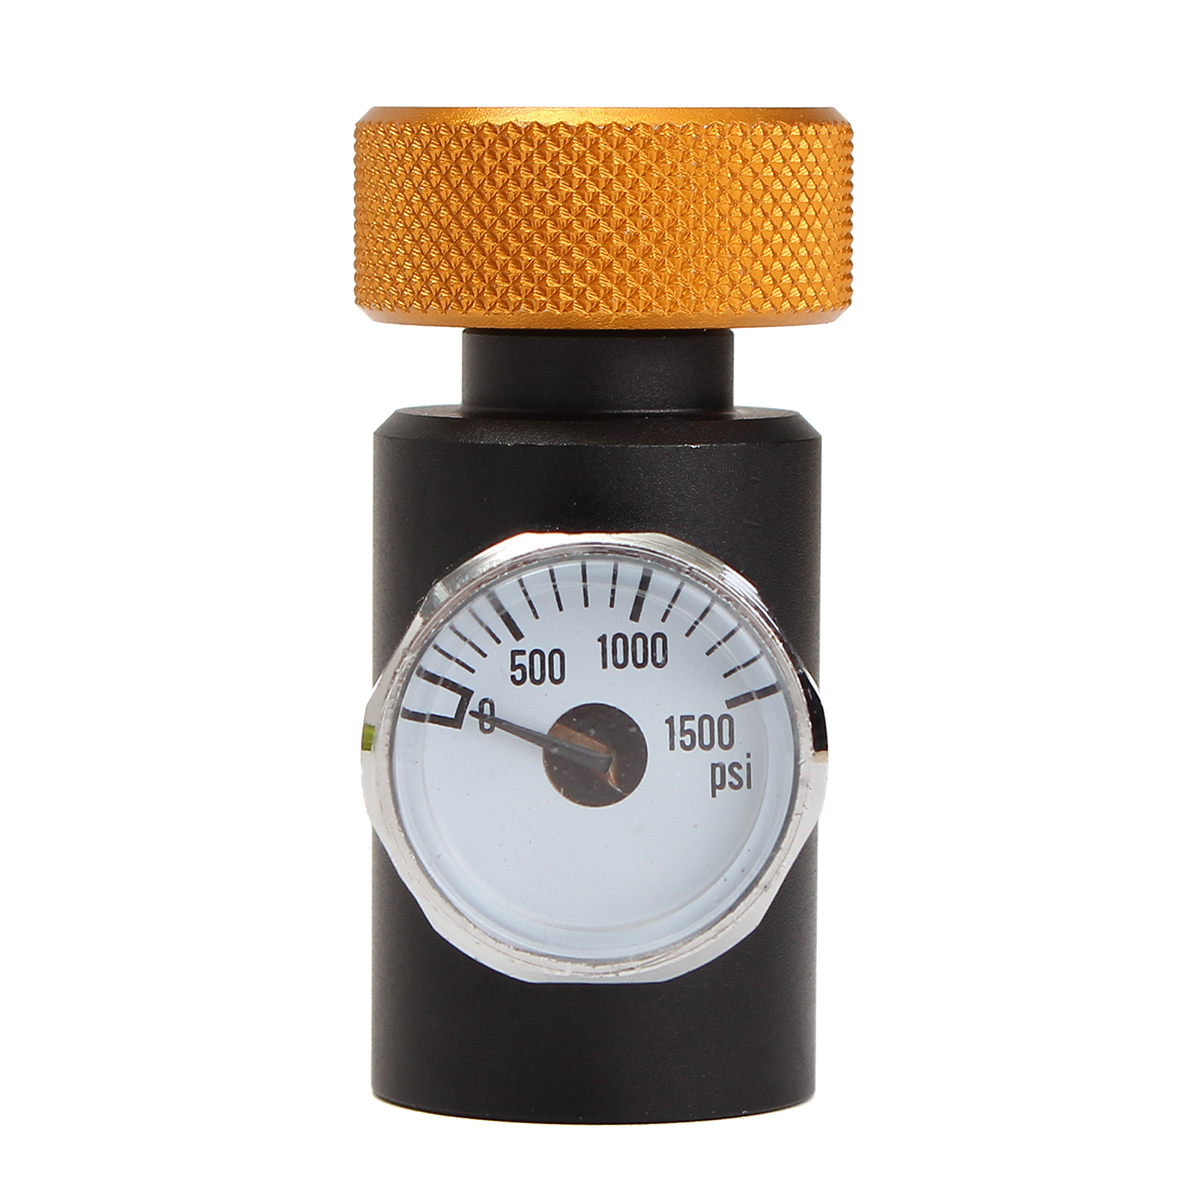 Soda On Off Adapter with 1500 PSI Pressure Gauge for Fill Soda Stream Tank